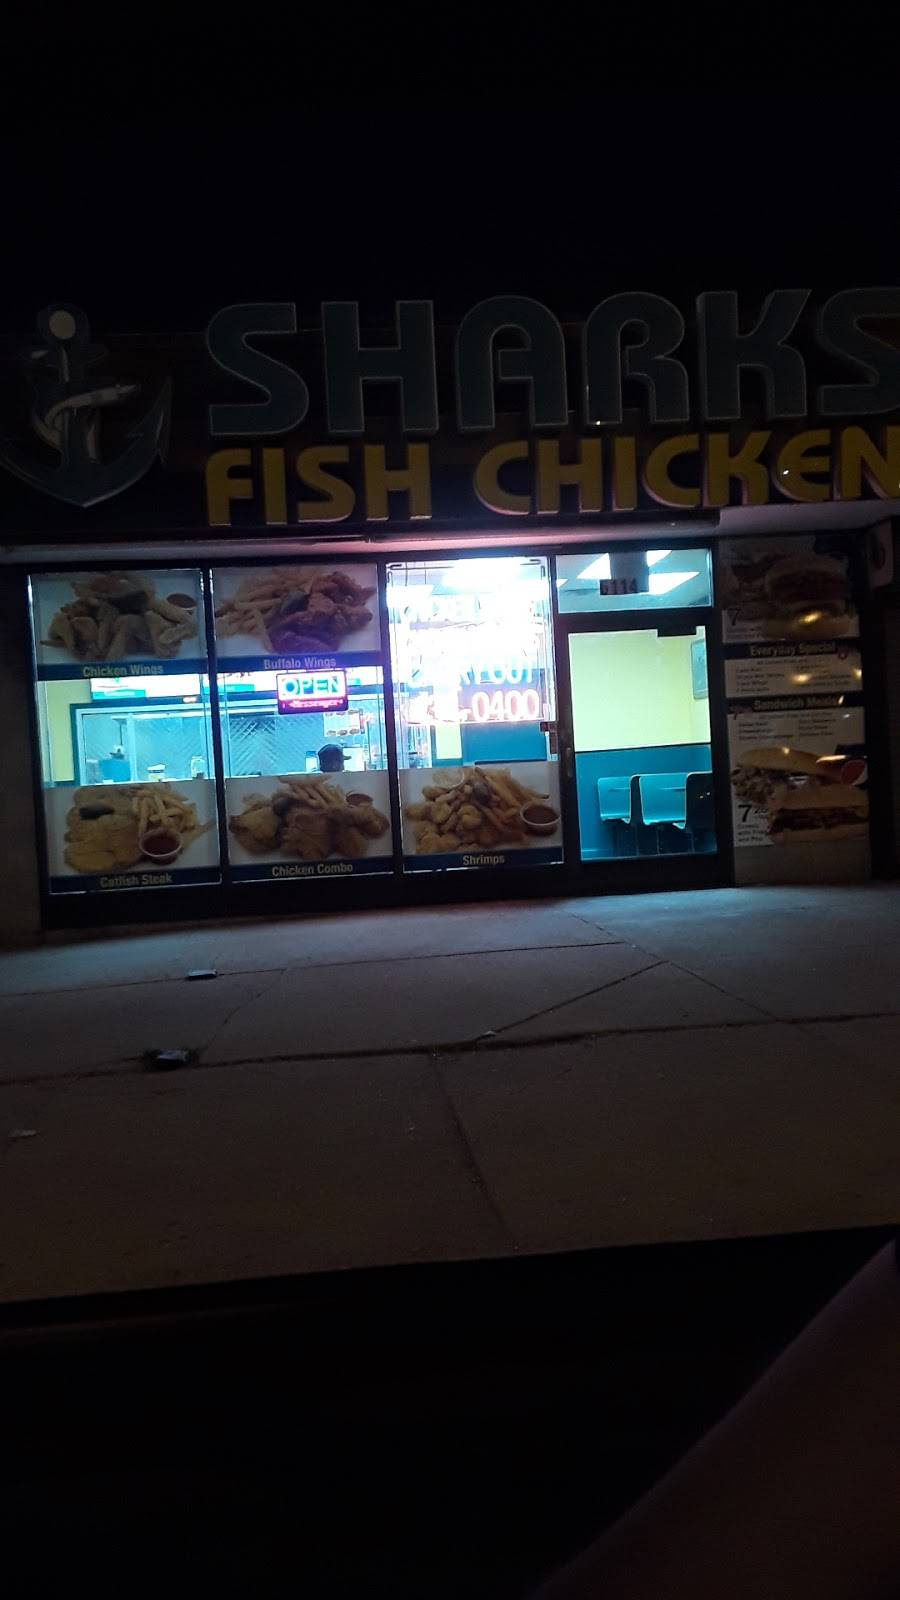 Sharks Fish & Chicken   meal takeaway   6114 S Western Ave, Chicago, IL 60636, USA   7734340400 OR +1 773-434-0400